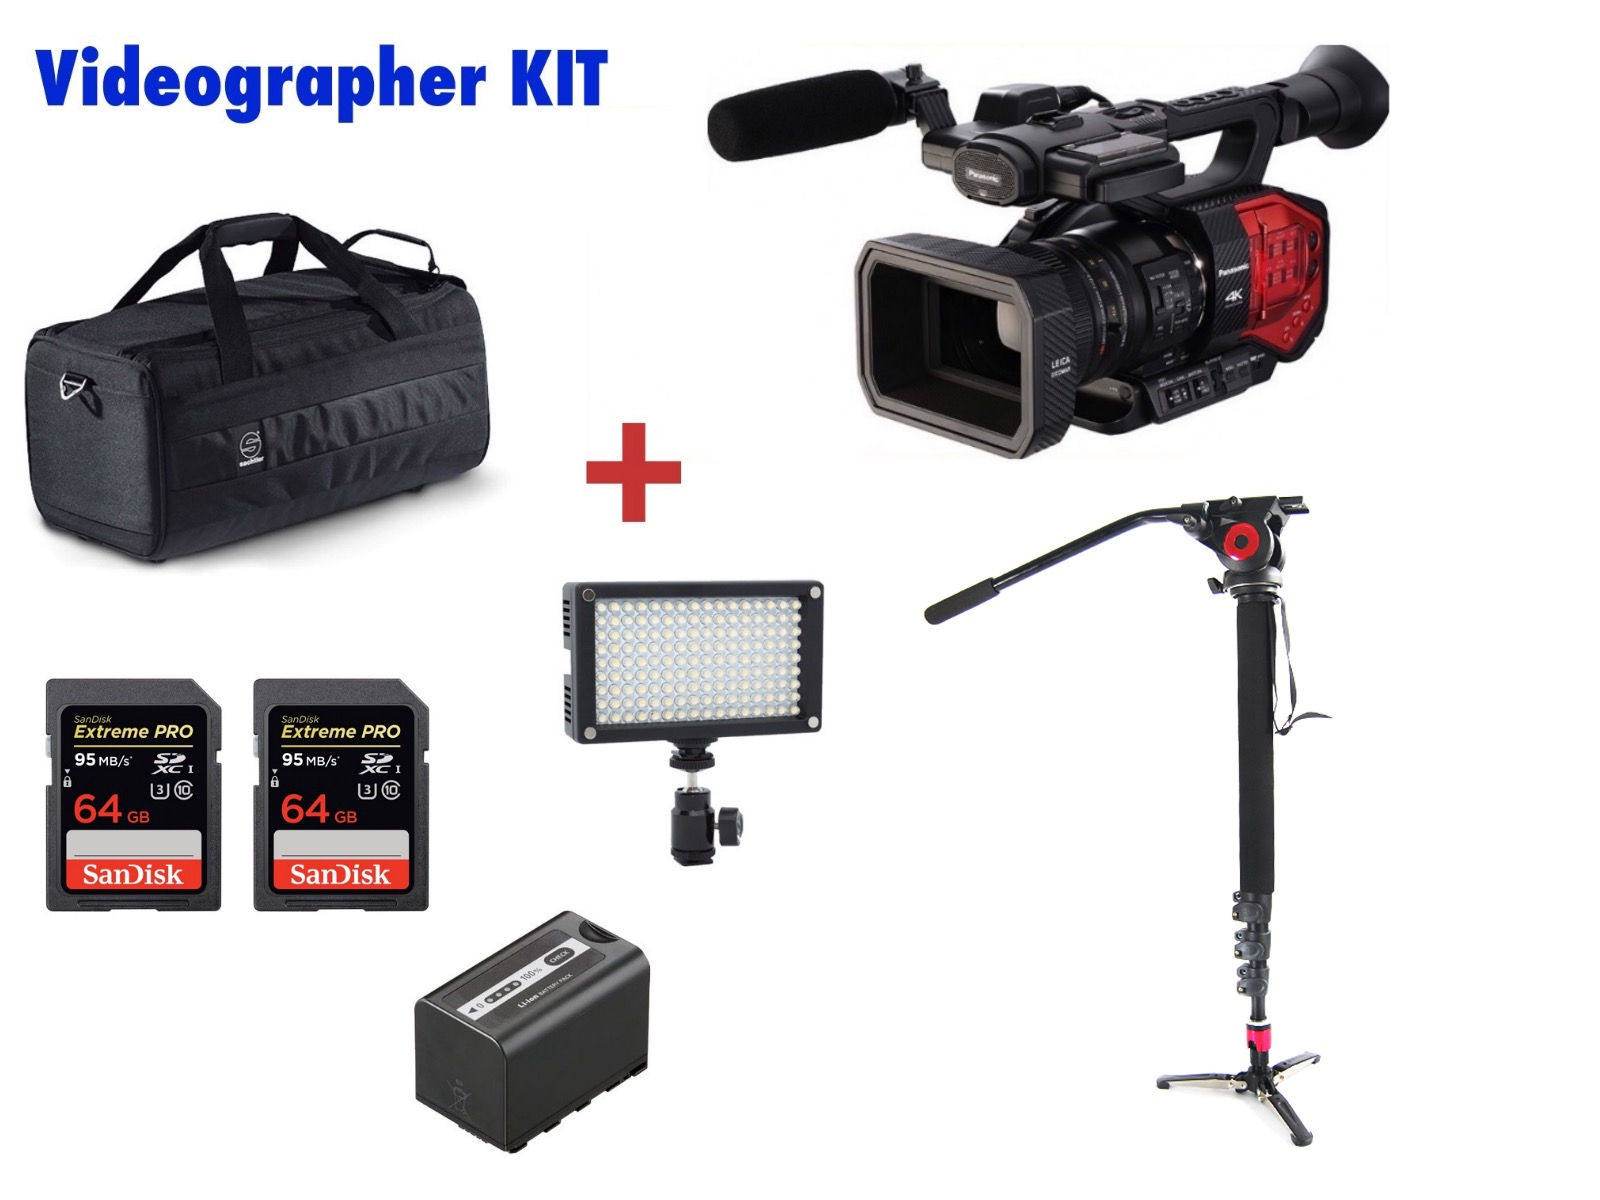 PANASONIC  AG-DVX200 ( DVX200 ) VIDEOGRAPHER KIT